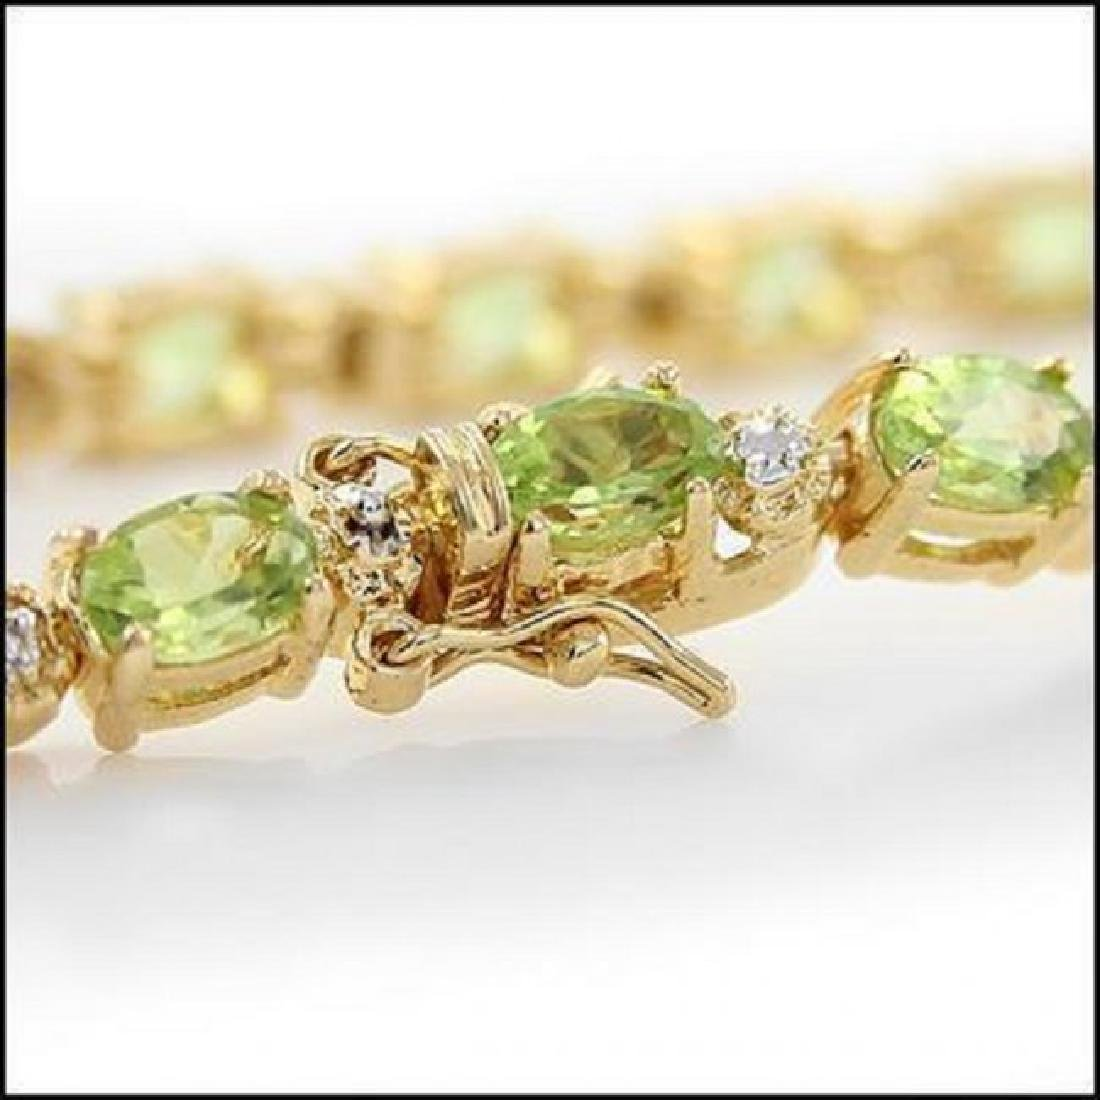 10.66 Ct Peridot & Diamond Fine Bracelet $1335 - 2